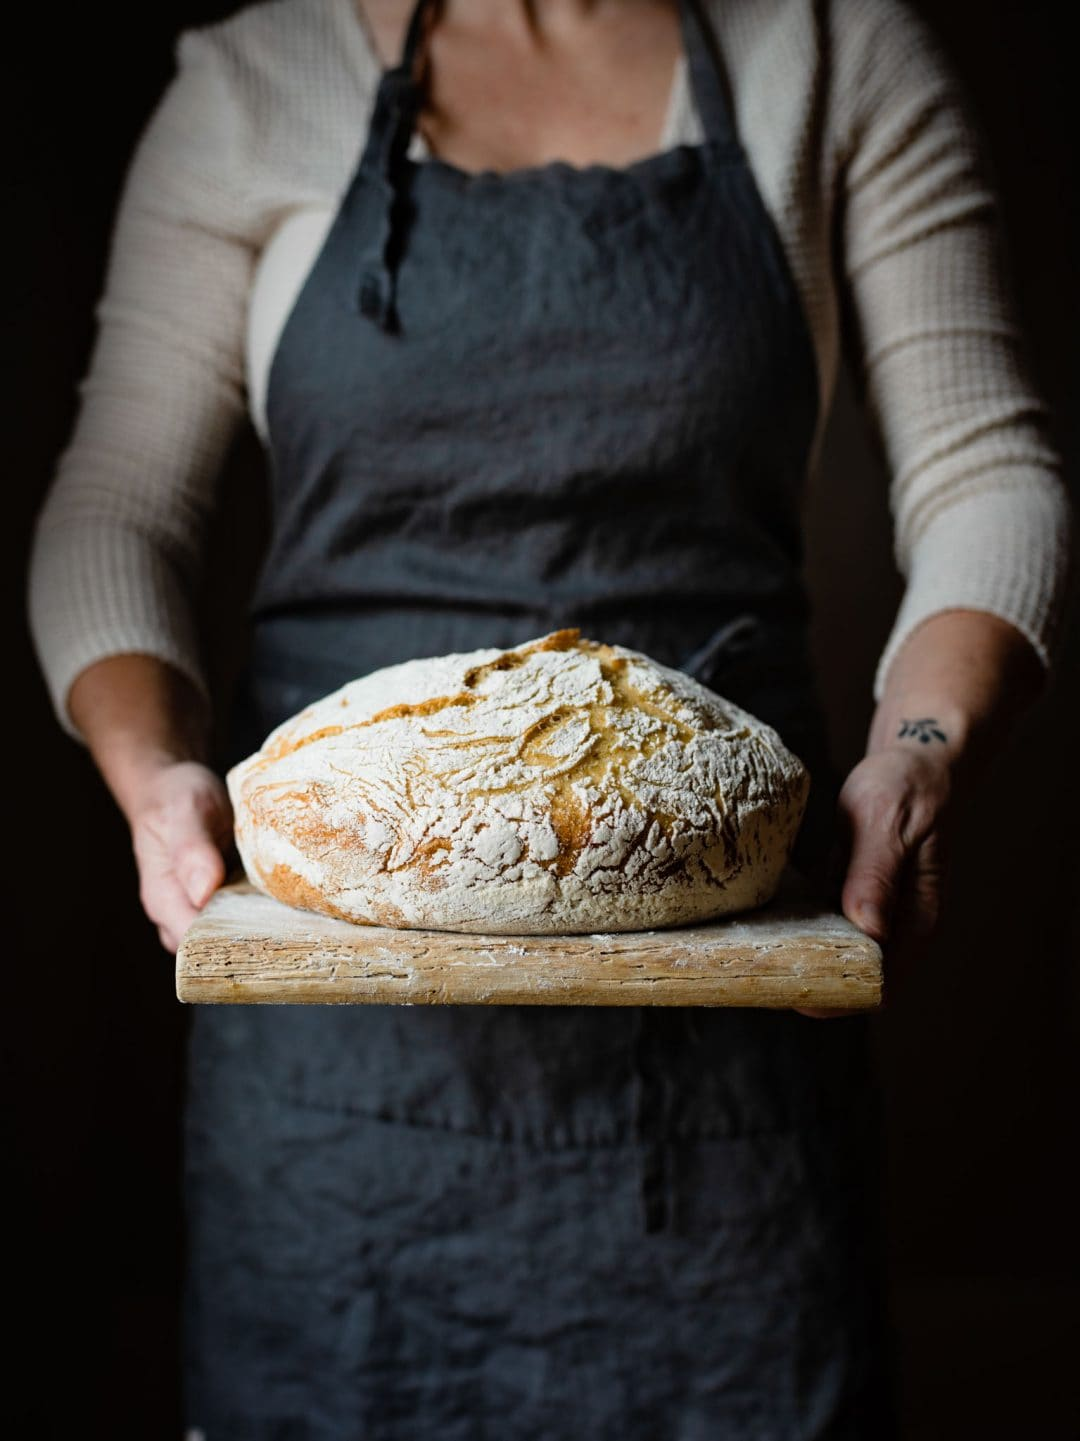 Chef holding a country bread loaf on a cutting board.